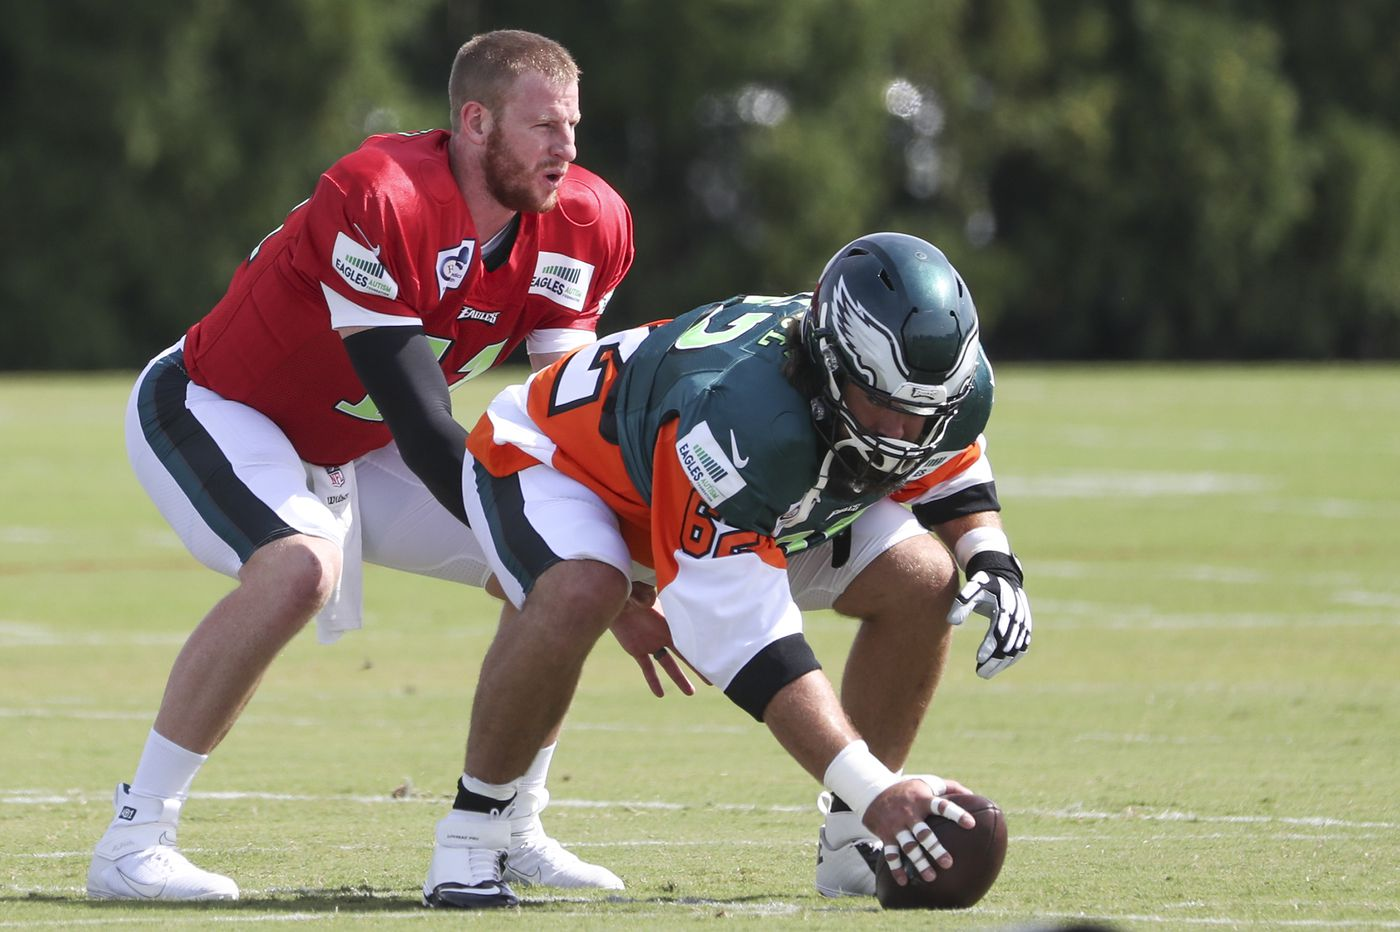 Eagles' offense trying to develop timing while on the clock, just like other teams. Look for low early-season scores.